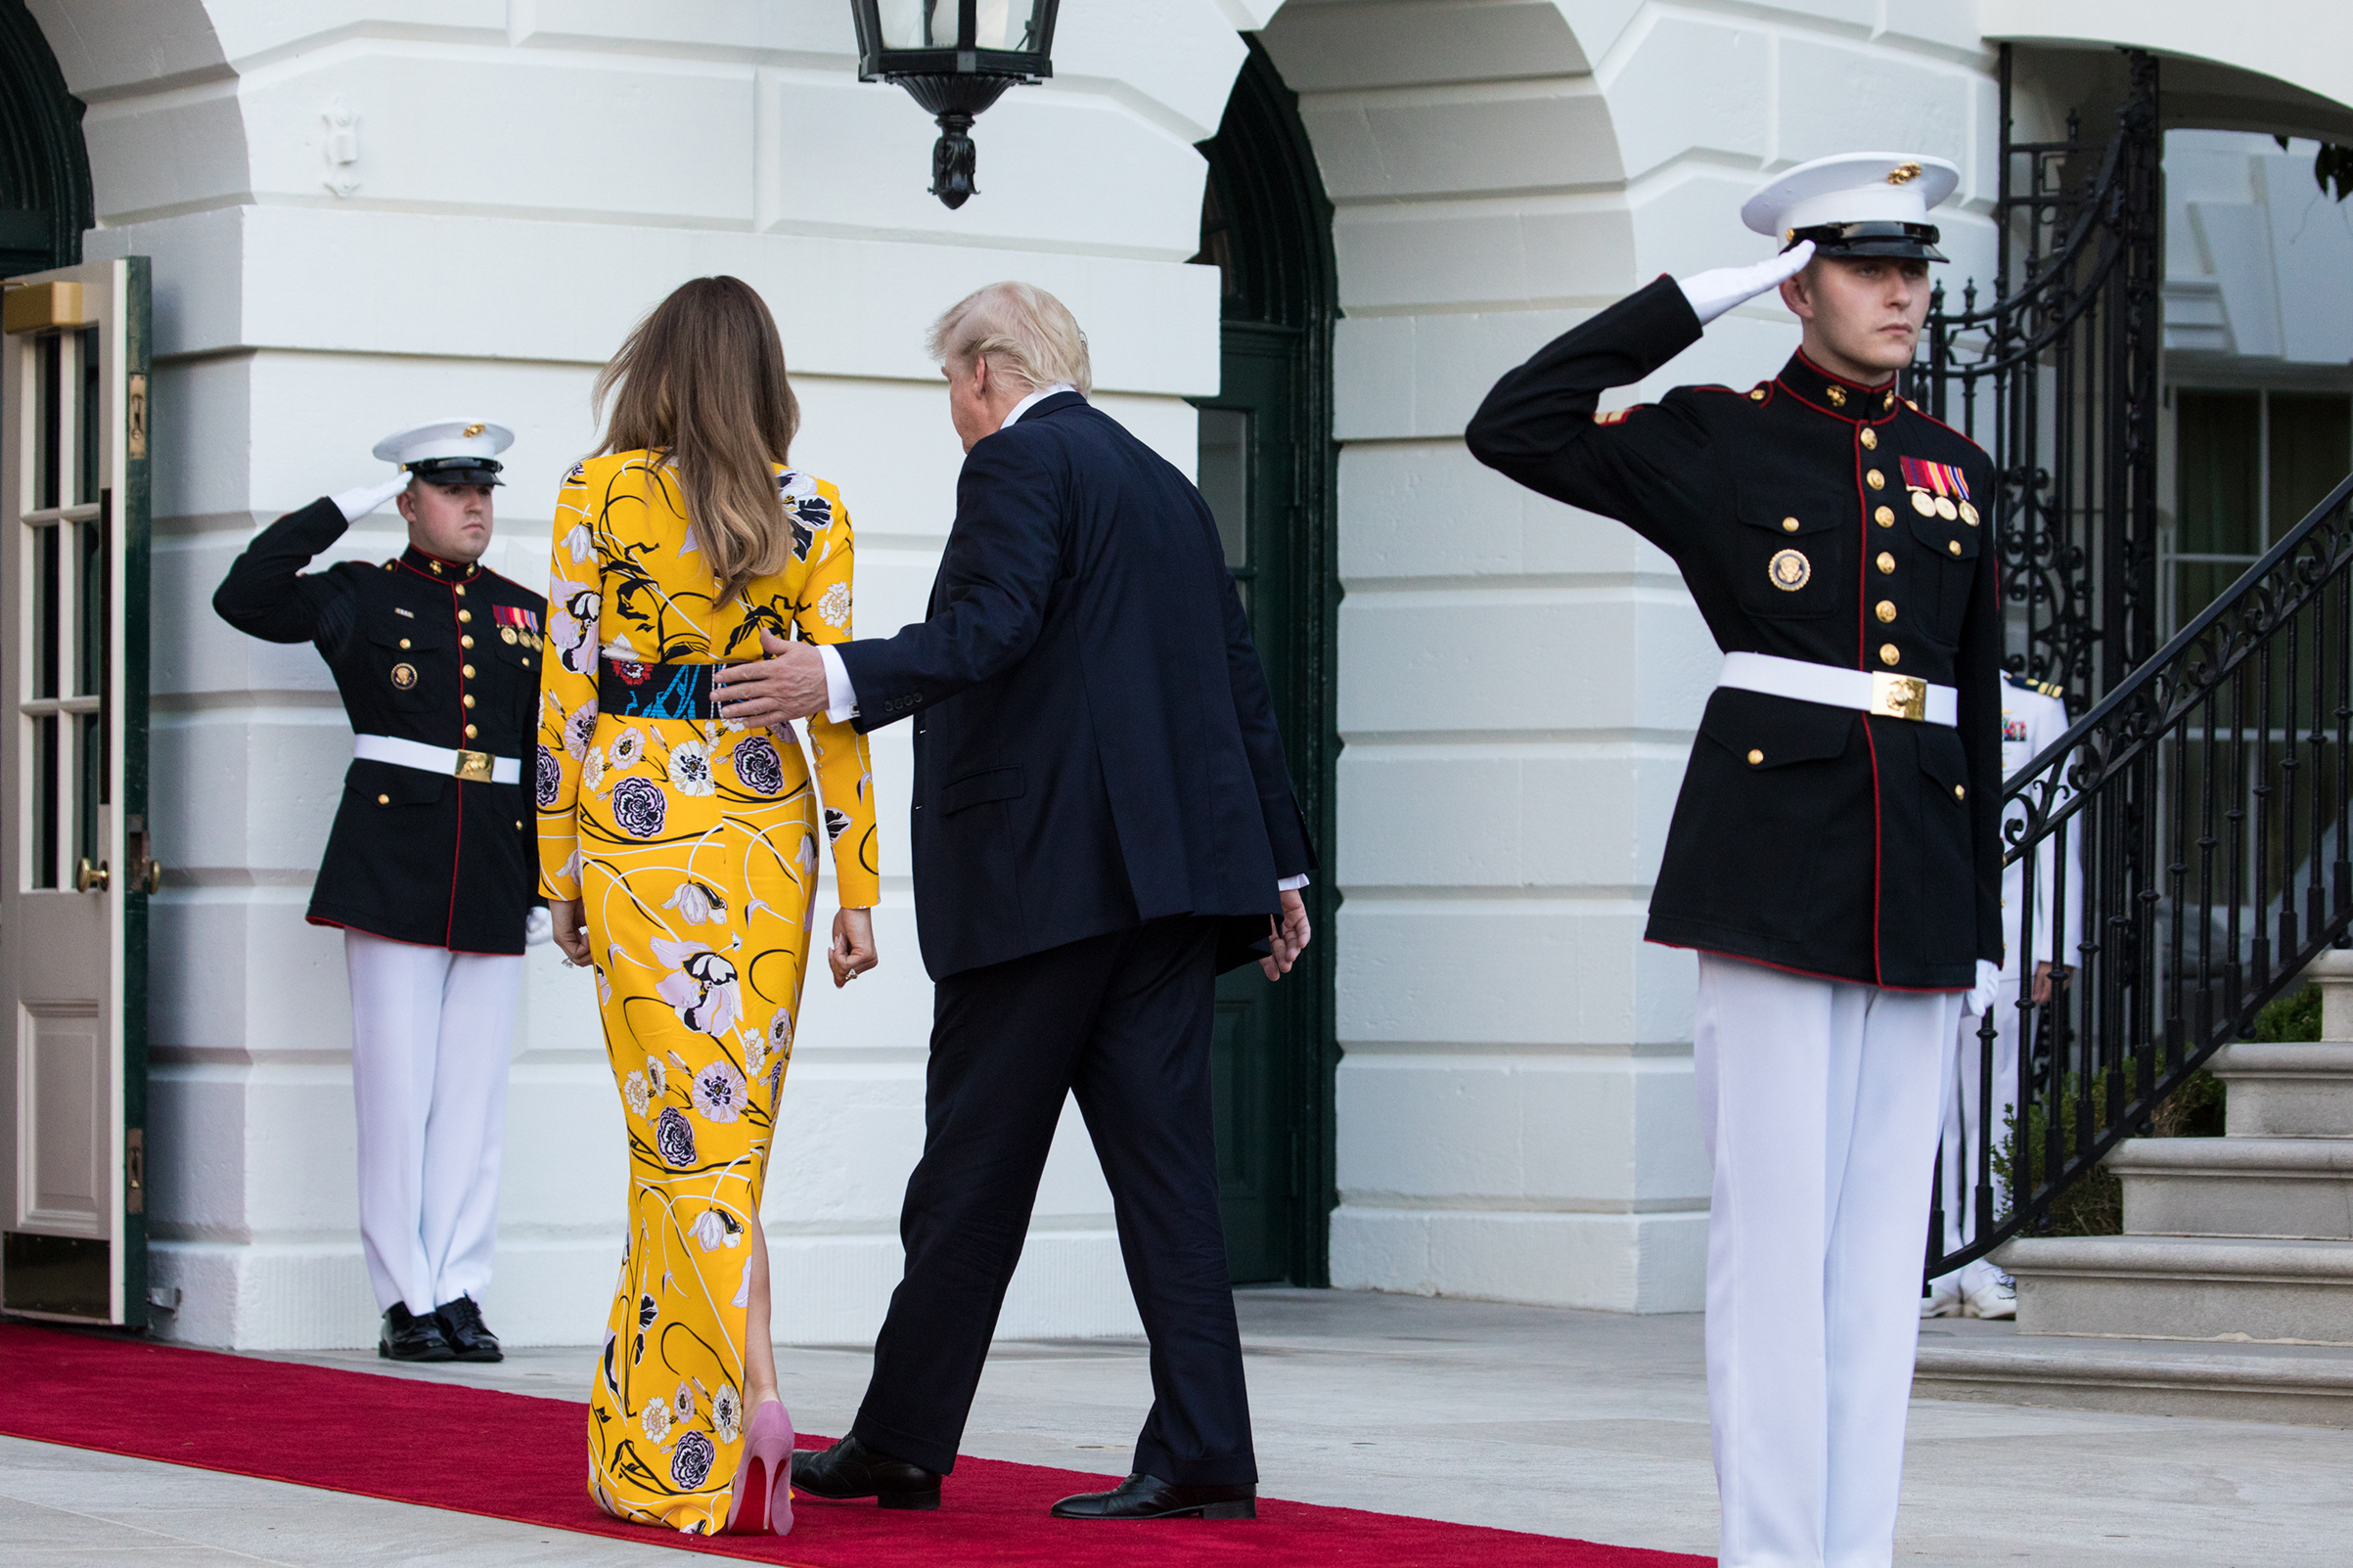 First lady Melania Trump wearing a yellow Pucci dress and President Donald Trump head back in to the White House, after the departure of Prime Minister Narendra Modi of India, June 26, 2017.